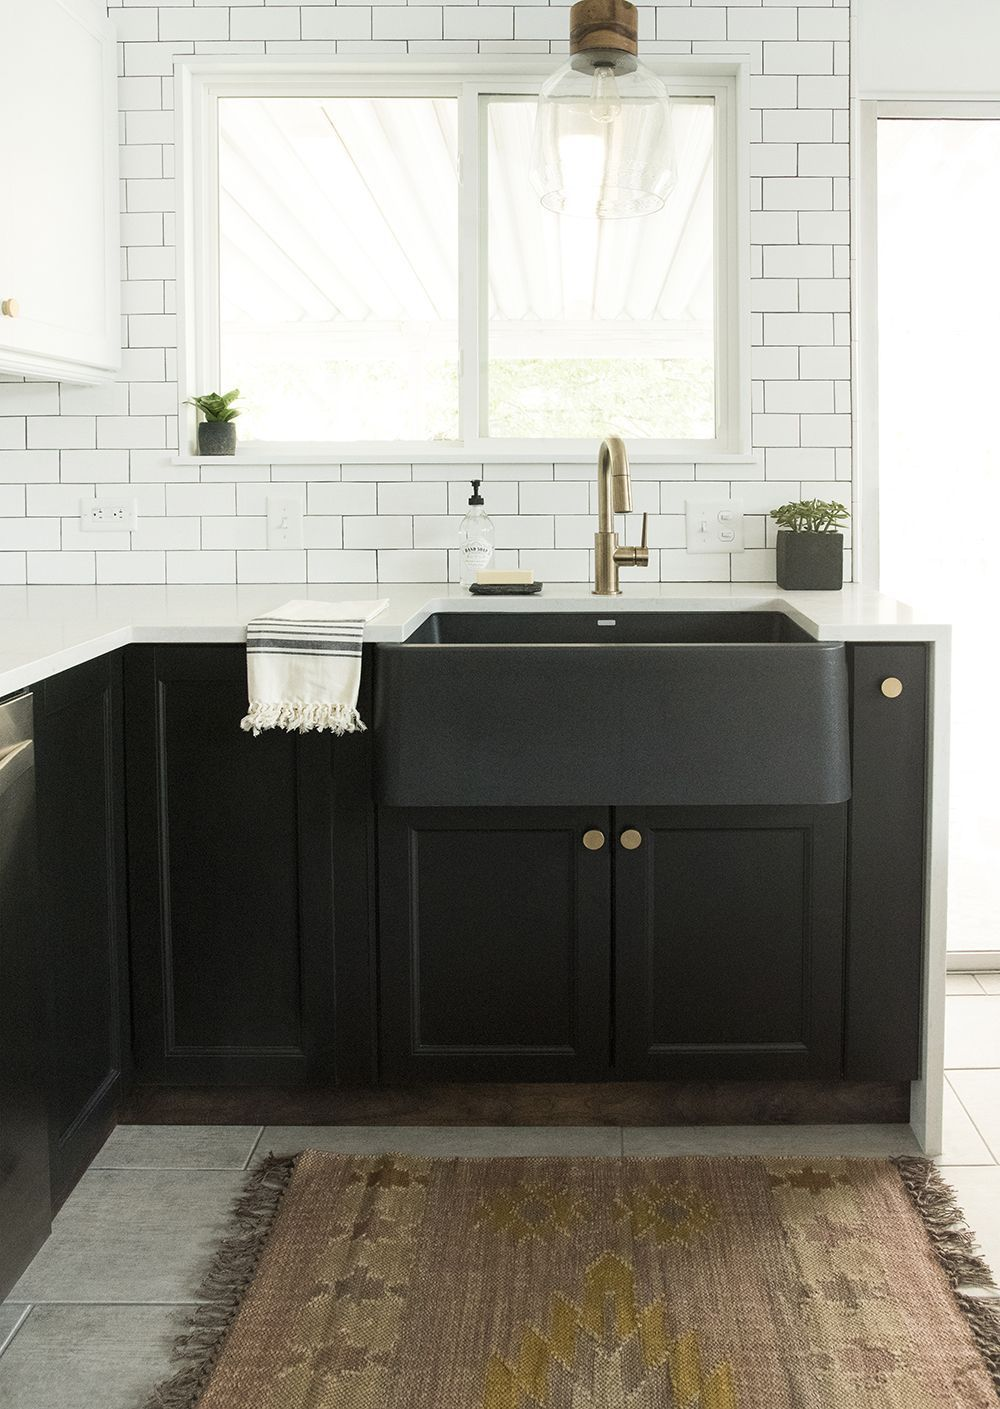 10 Kitchens With Black Appliances In Trending Design Ideas For